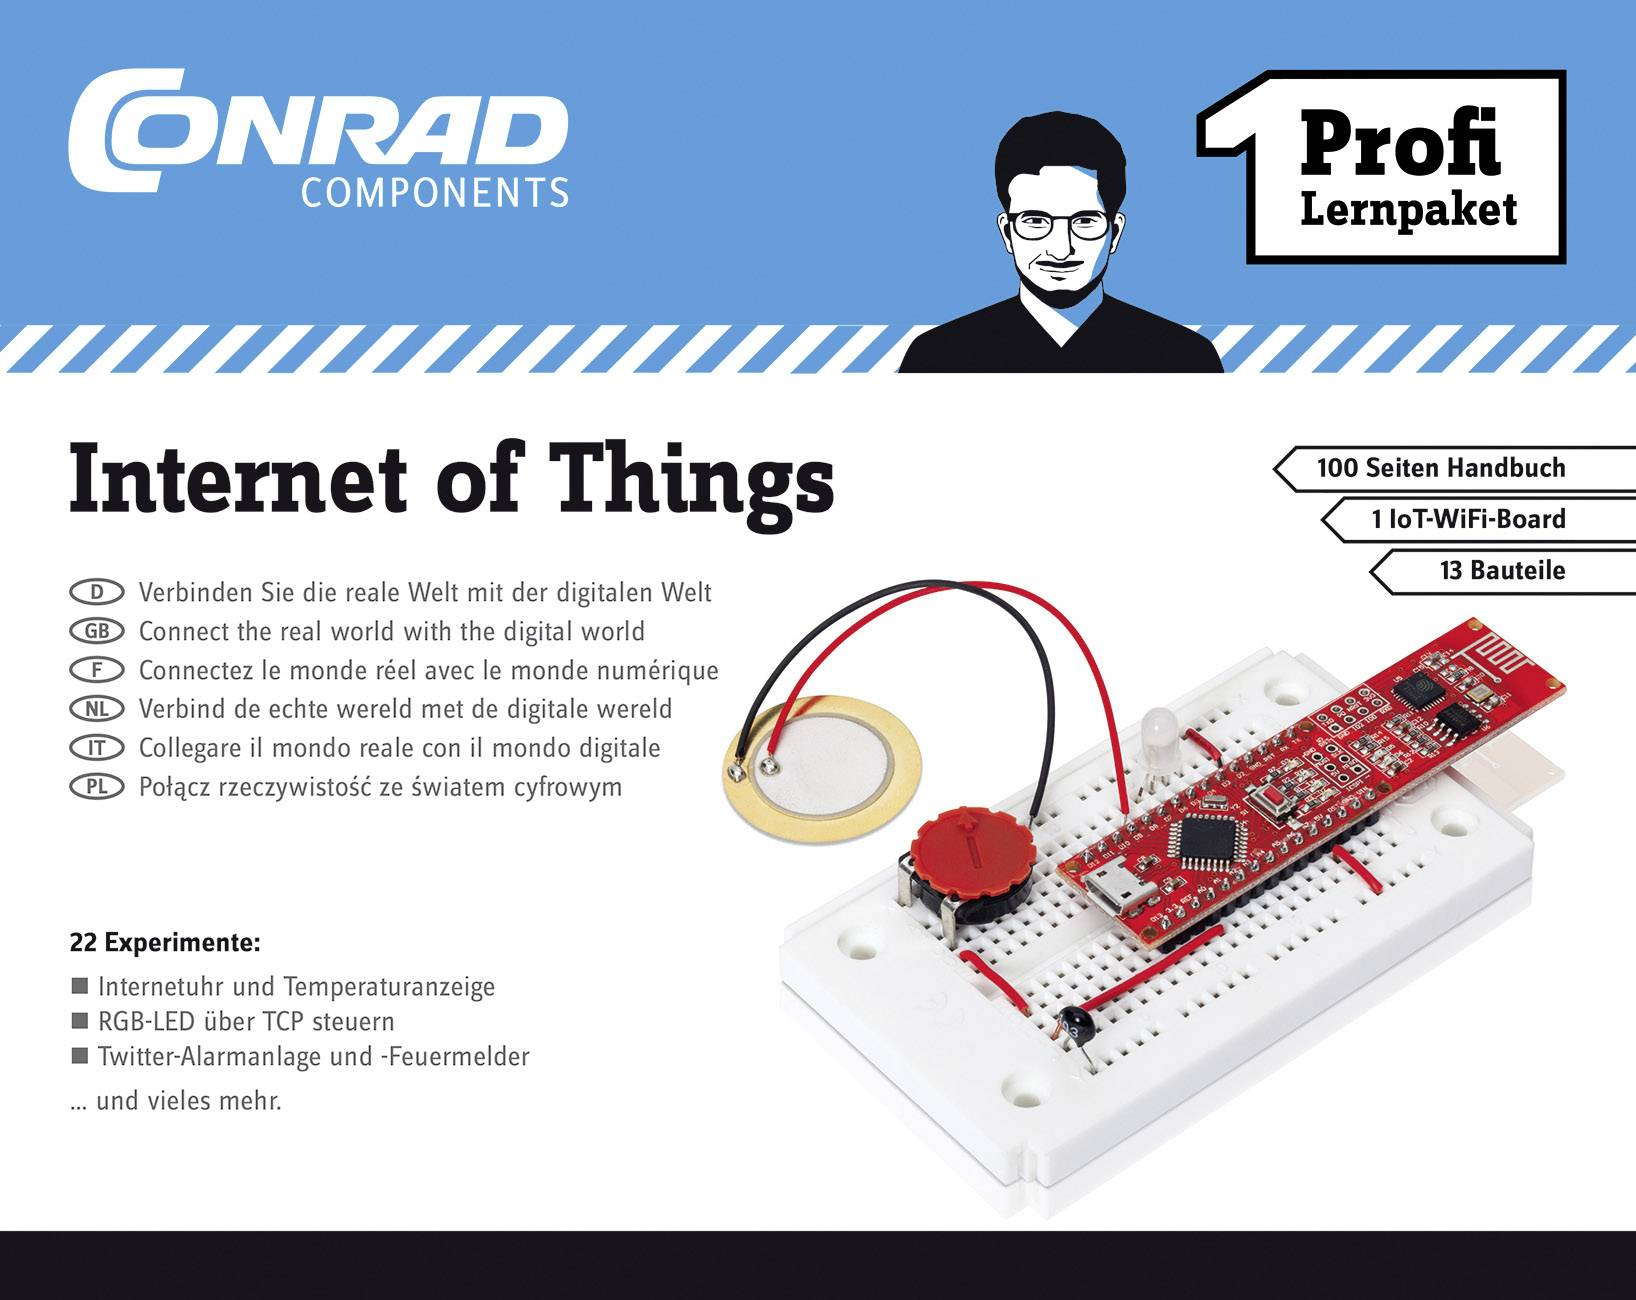 Výuková sada Conrad Components Profi Lernpaket Internet of Things 10215, od 14 let